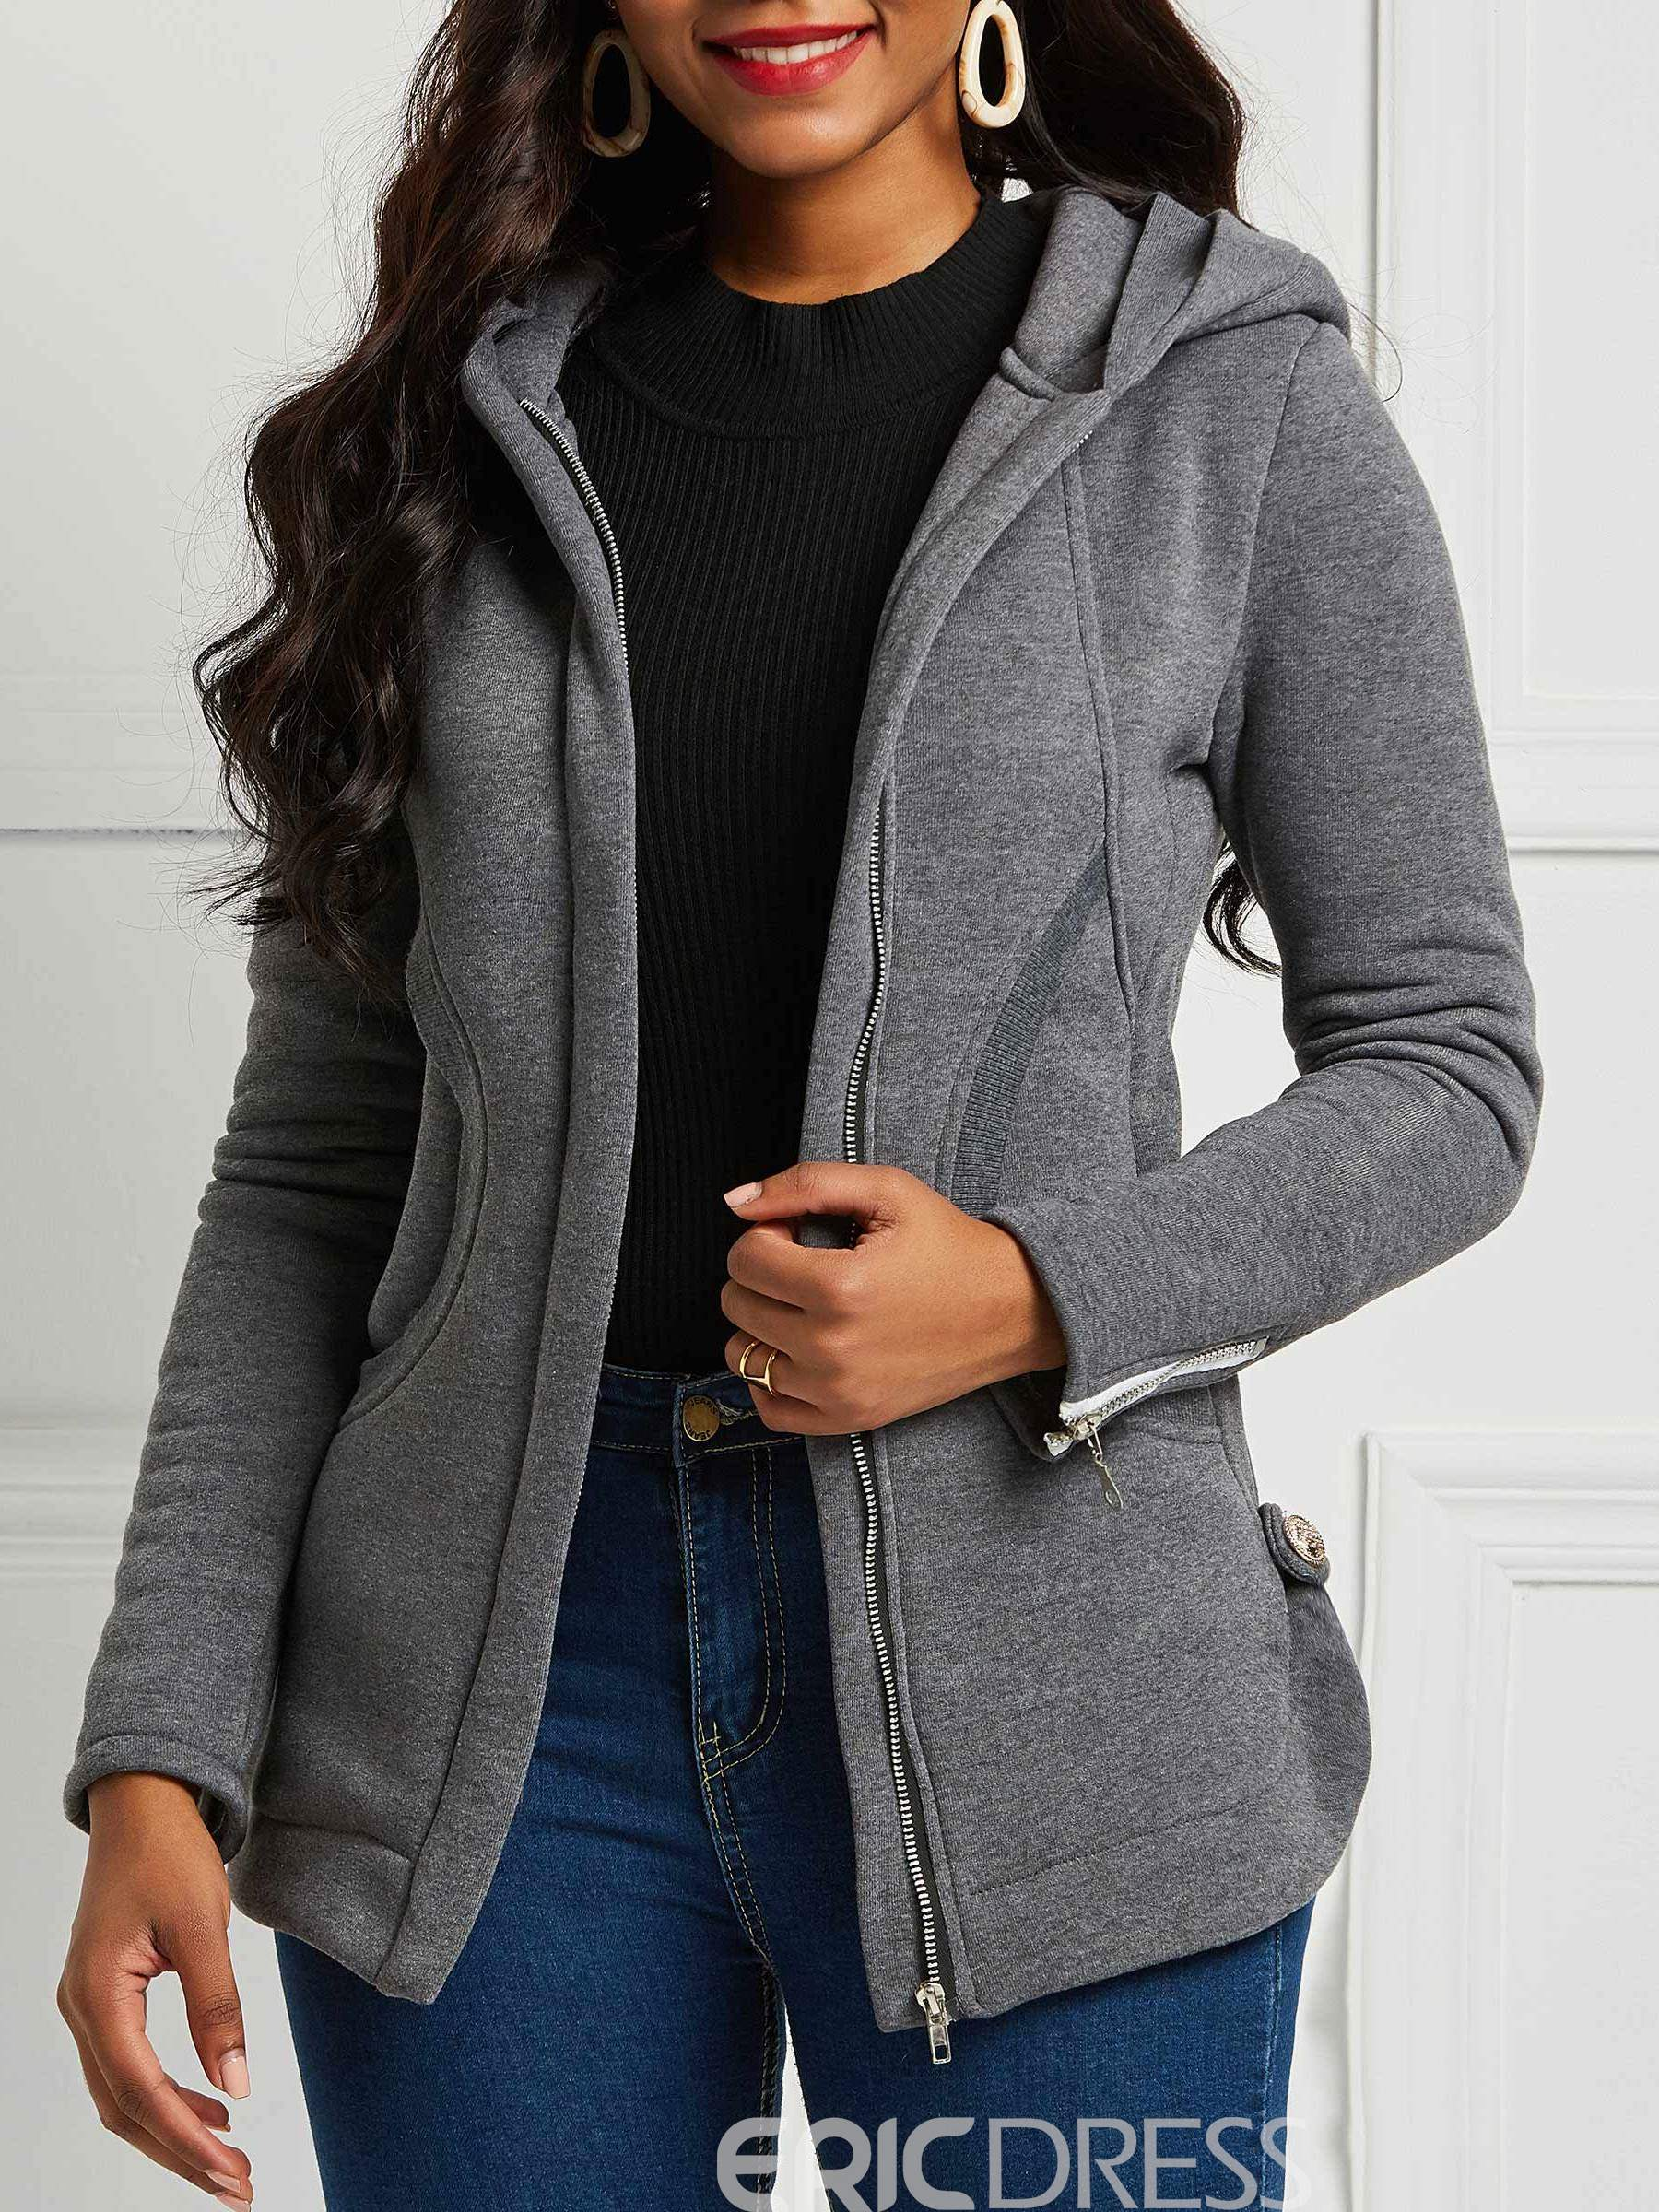 Ericdress Zipper Pocket Casual Hooded Jacket